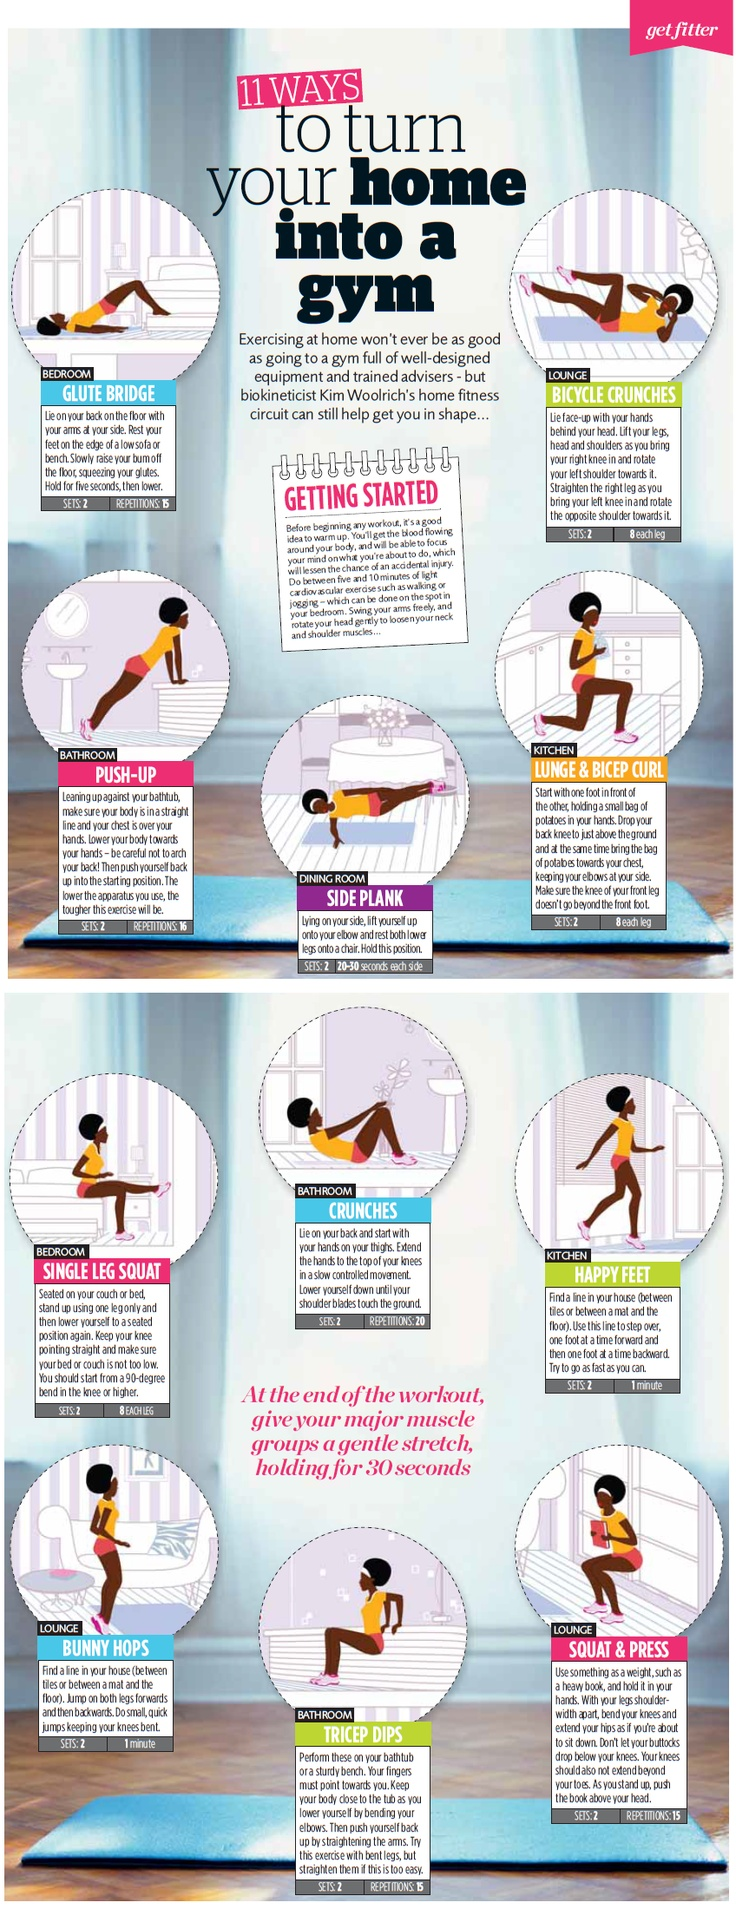 Best images about vitality magazine on pinterest